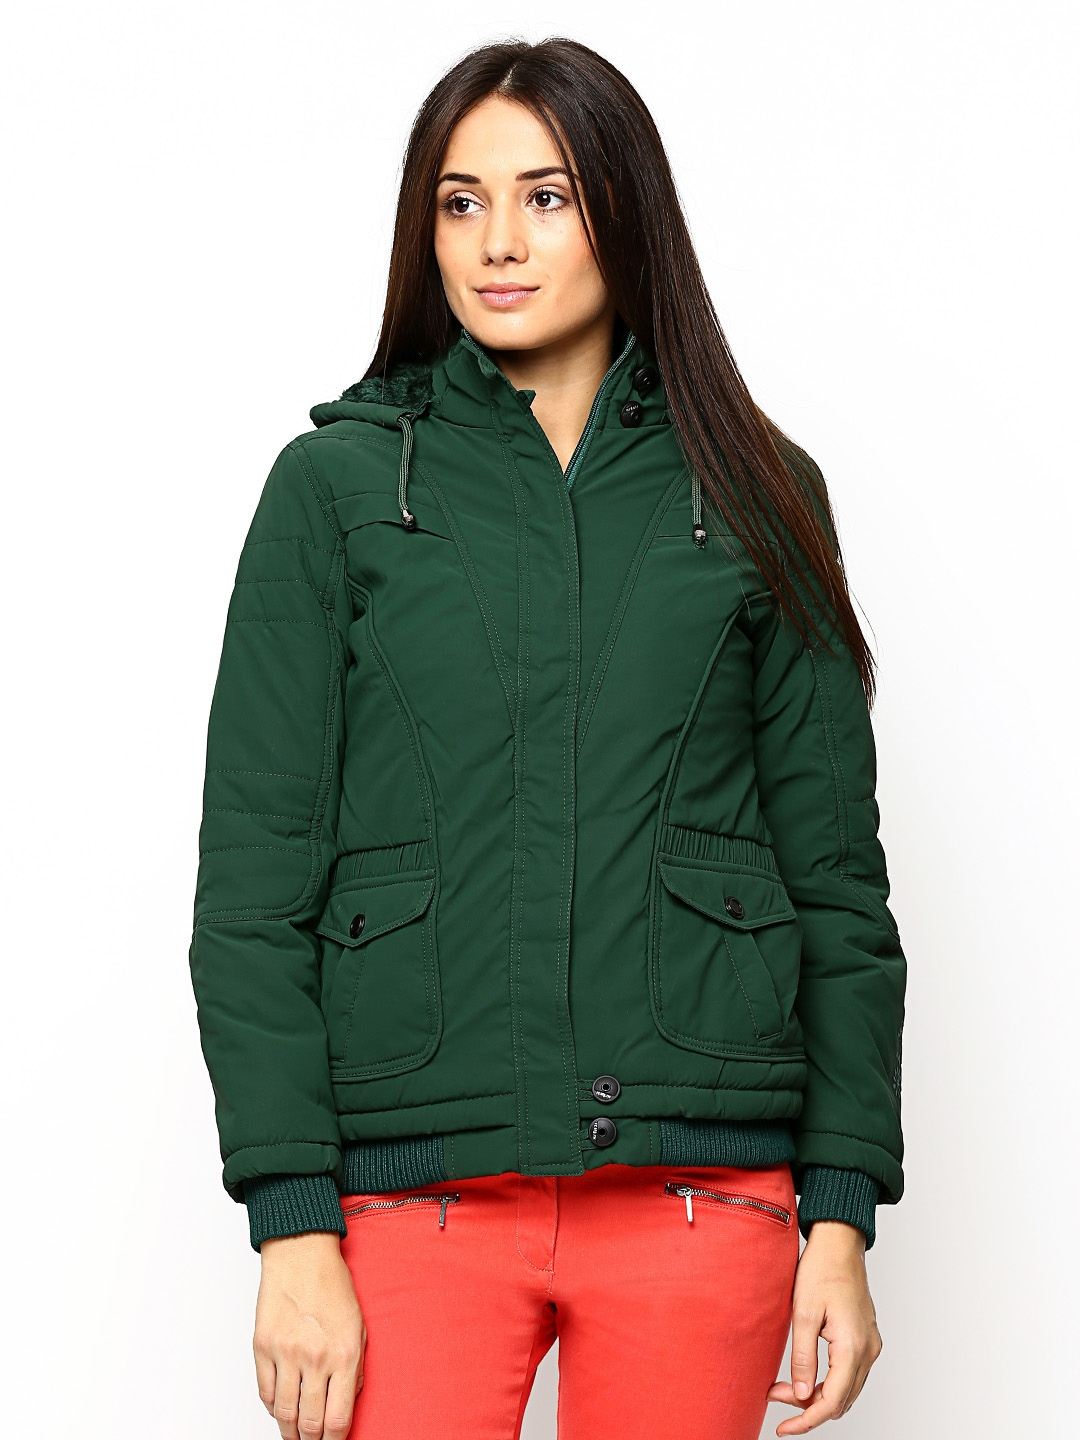 fort collins women rust coloured jacket